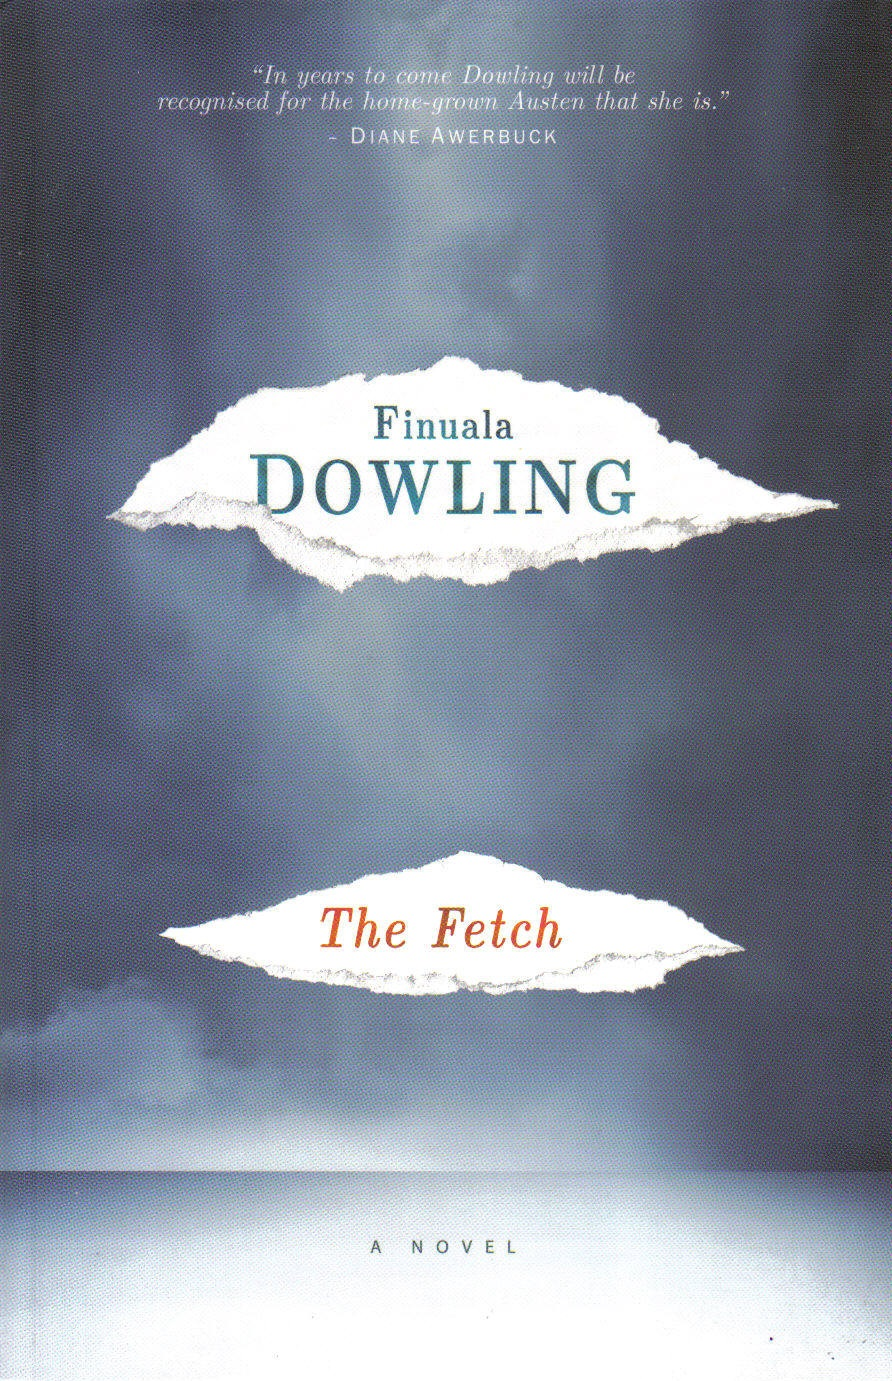 THE FETCH  Novel, 308 pages  Kwela Books (SA) - May 2015  The coastal settlement of Slangkop, near Cape Town, comes alive over weekends when mercurial Chas Fawkes holds court at Midden House. Invited to one of his legendary parties, shy, plump librarian Nina Browne is smitten and becomes first his secretary, then his lover. But things are not as they seem on the glittering surface, as Nina in turn is loved and watched over by Chas's childhood playmate, the hermit-like environmentalist William.    When Chas's estranged alcoholic wife Dolly briefly returns, she steals William's savings and leaves behind a different treasure – her baby son, Oro. In a gentler, more innocent way than Chas, young Oro is a catalyst in the Slangkop community. William is forced out of his seclusion and proves a surprisingly good stand-in dad.    William is still desperate to win Nina's heart, but how, when she is so caught up in Chas's slipstream? As the inhabitants of this eccentric seaside community orbit around Chas and his increasingly desperate crises, sex raises questions that love must help them answer.